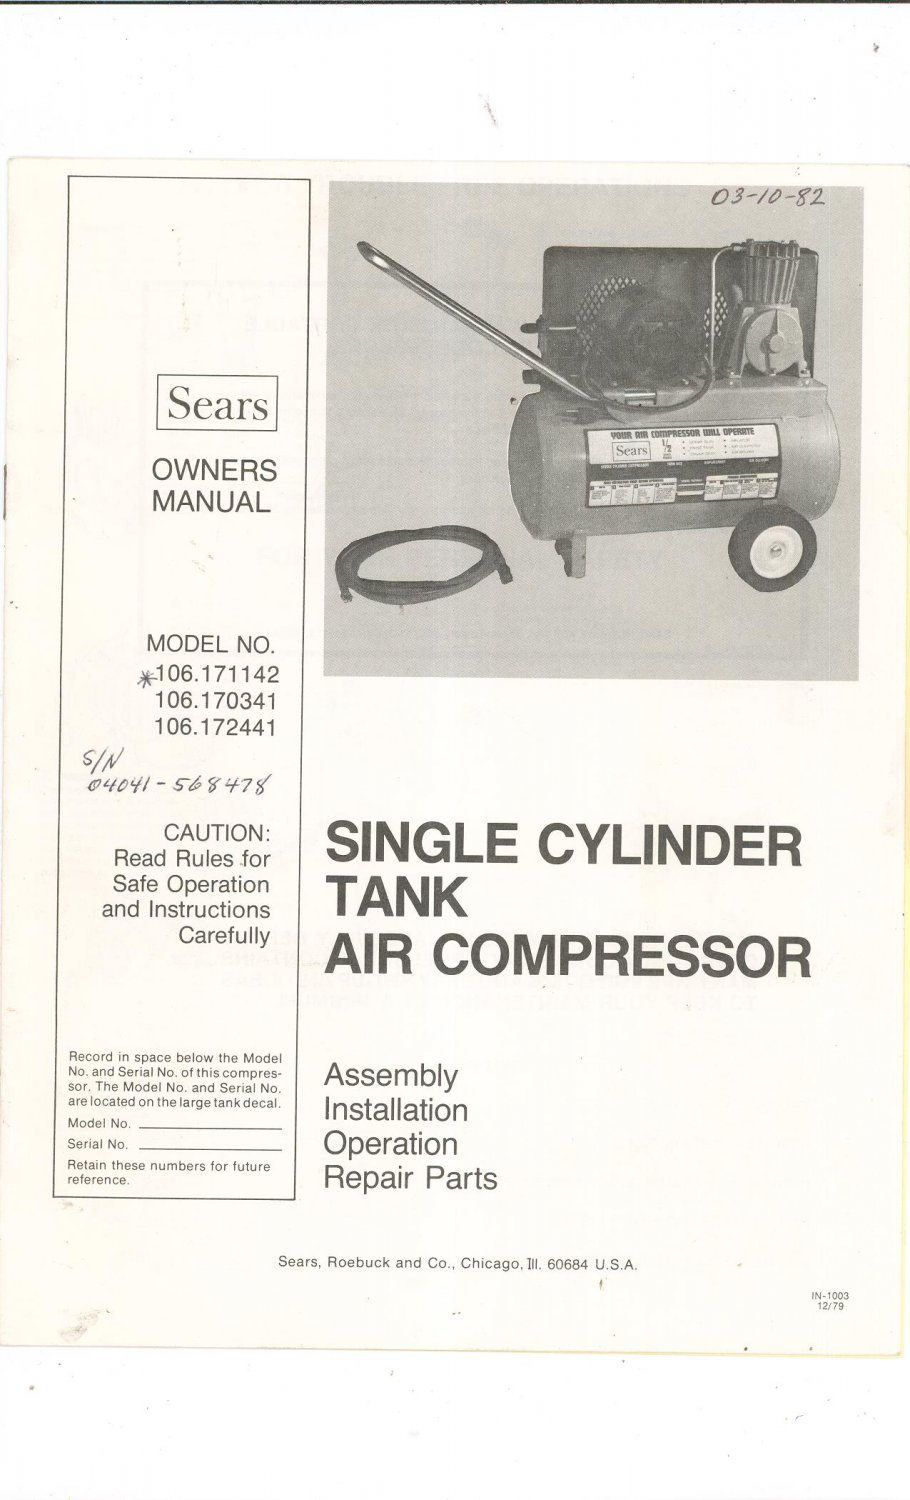 Sears Single Cylinder Tank Air Compressor Owners Manual